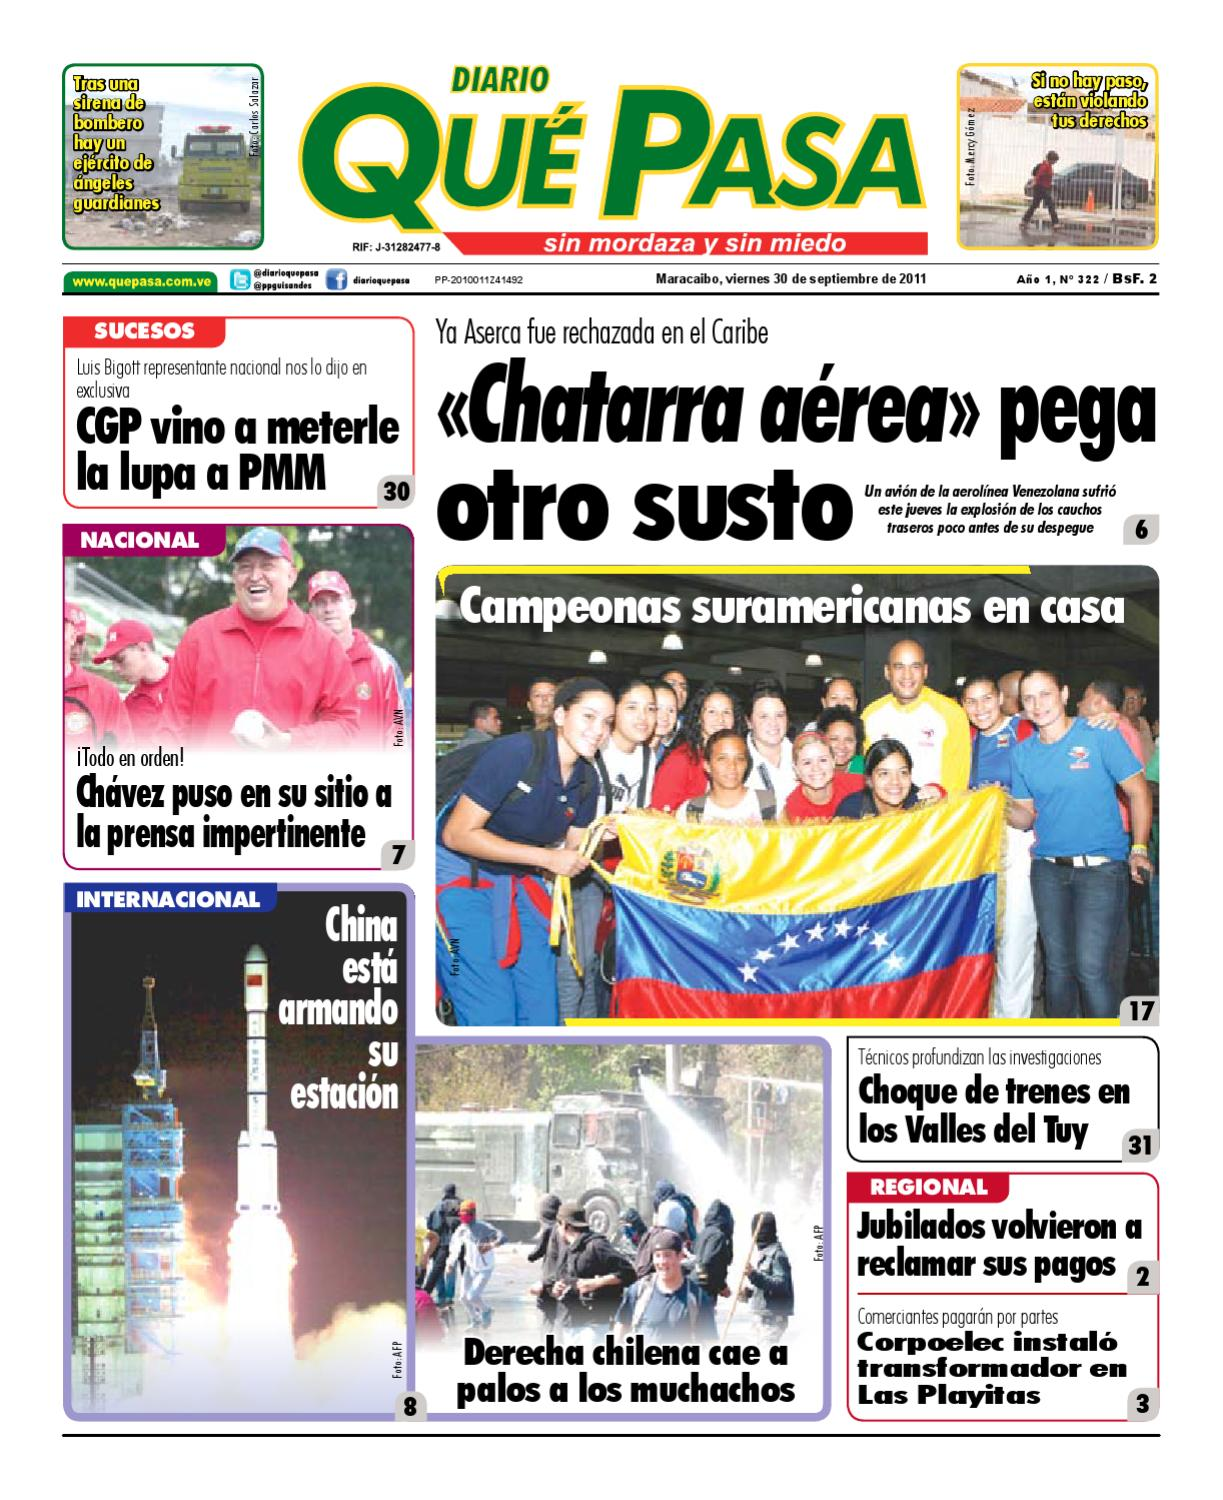 777f80bb00f7 30 09 11 by Diario Que pasa - issuu